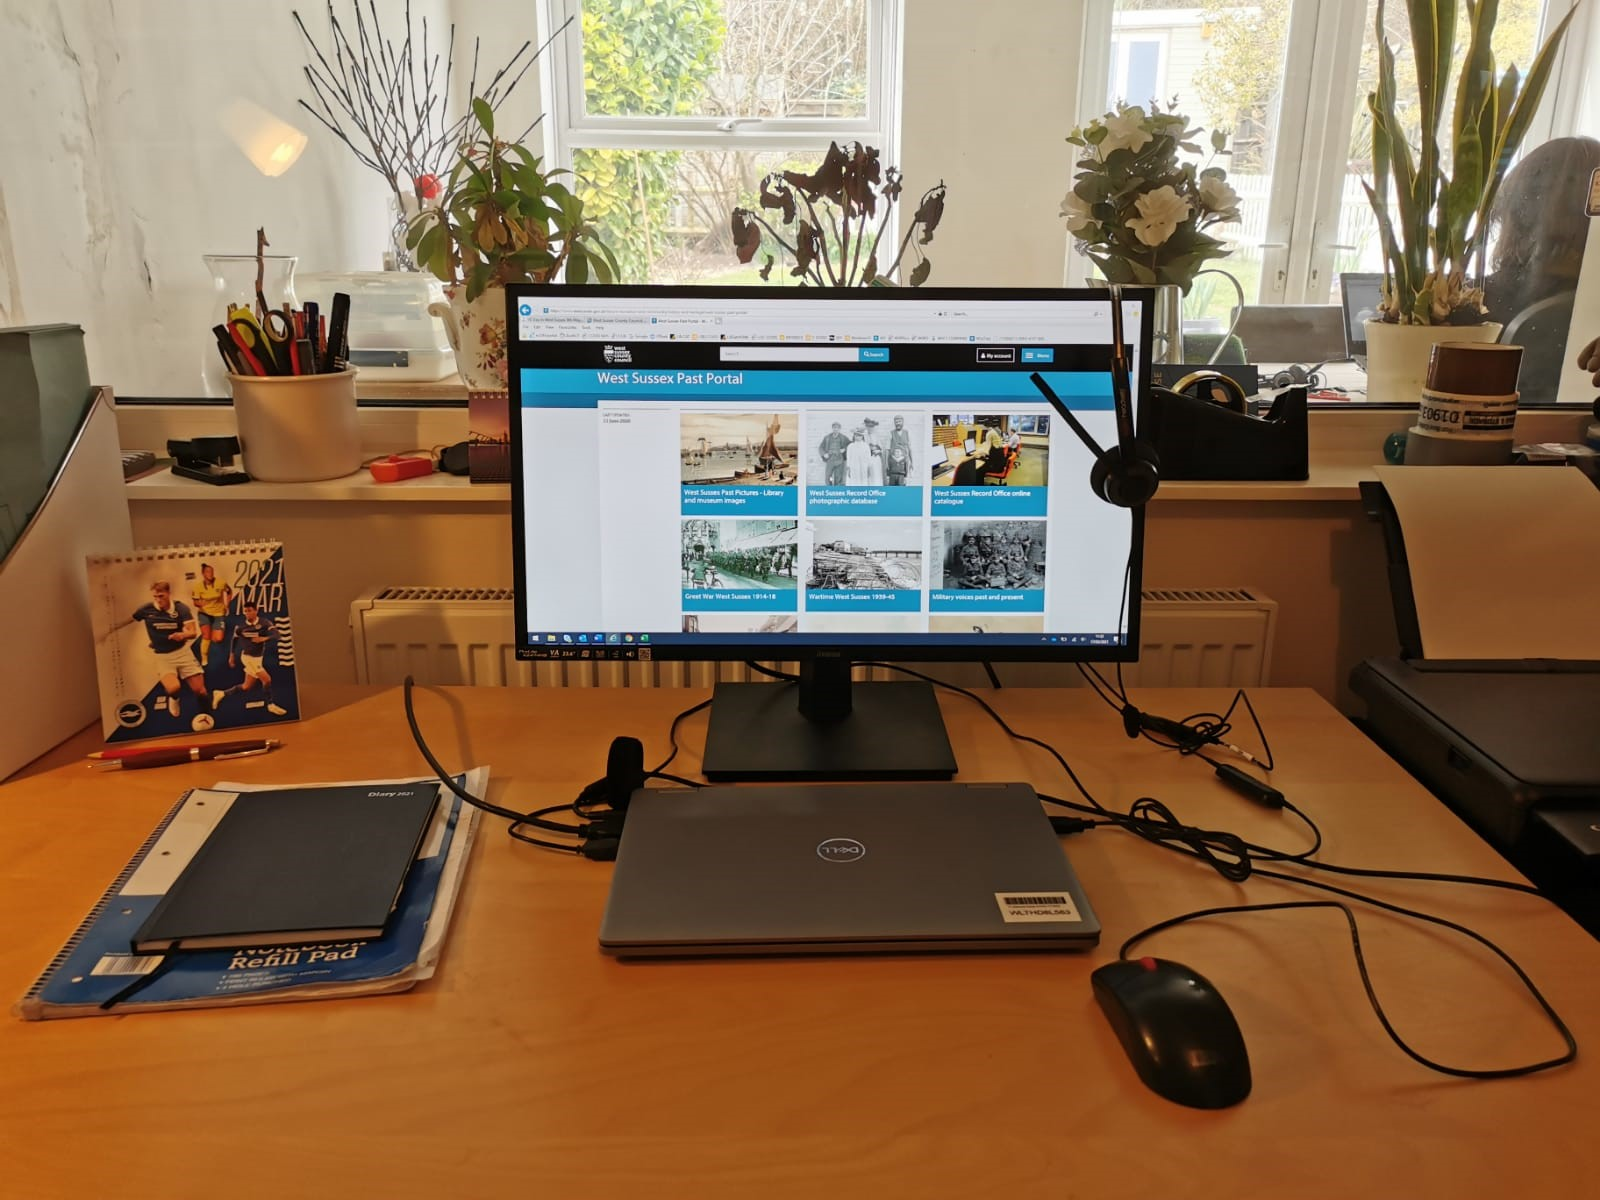 Photograph of a desk set up, with a monitor, laptop, mouse, notebooks and other office supplies.